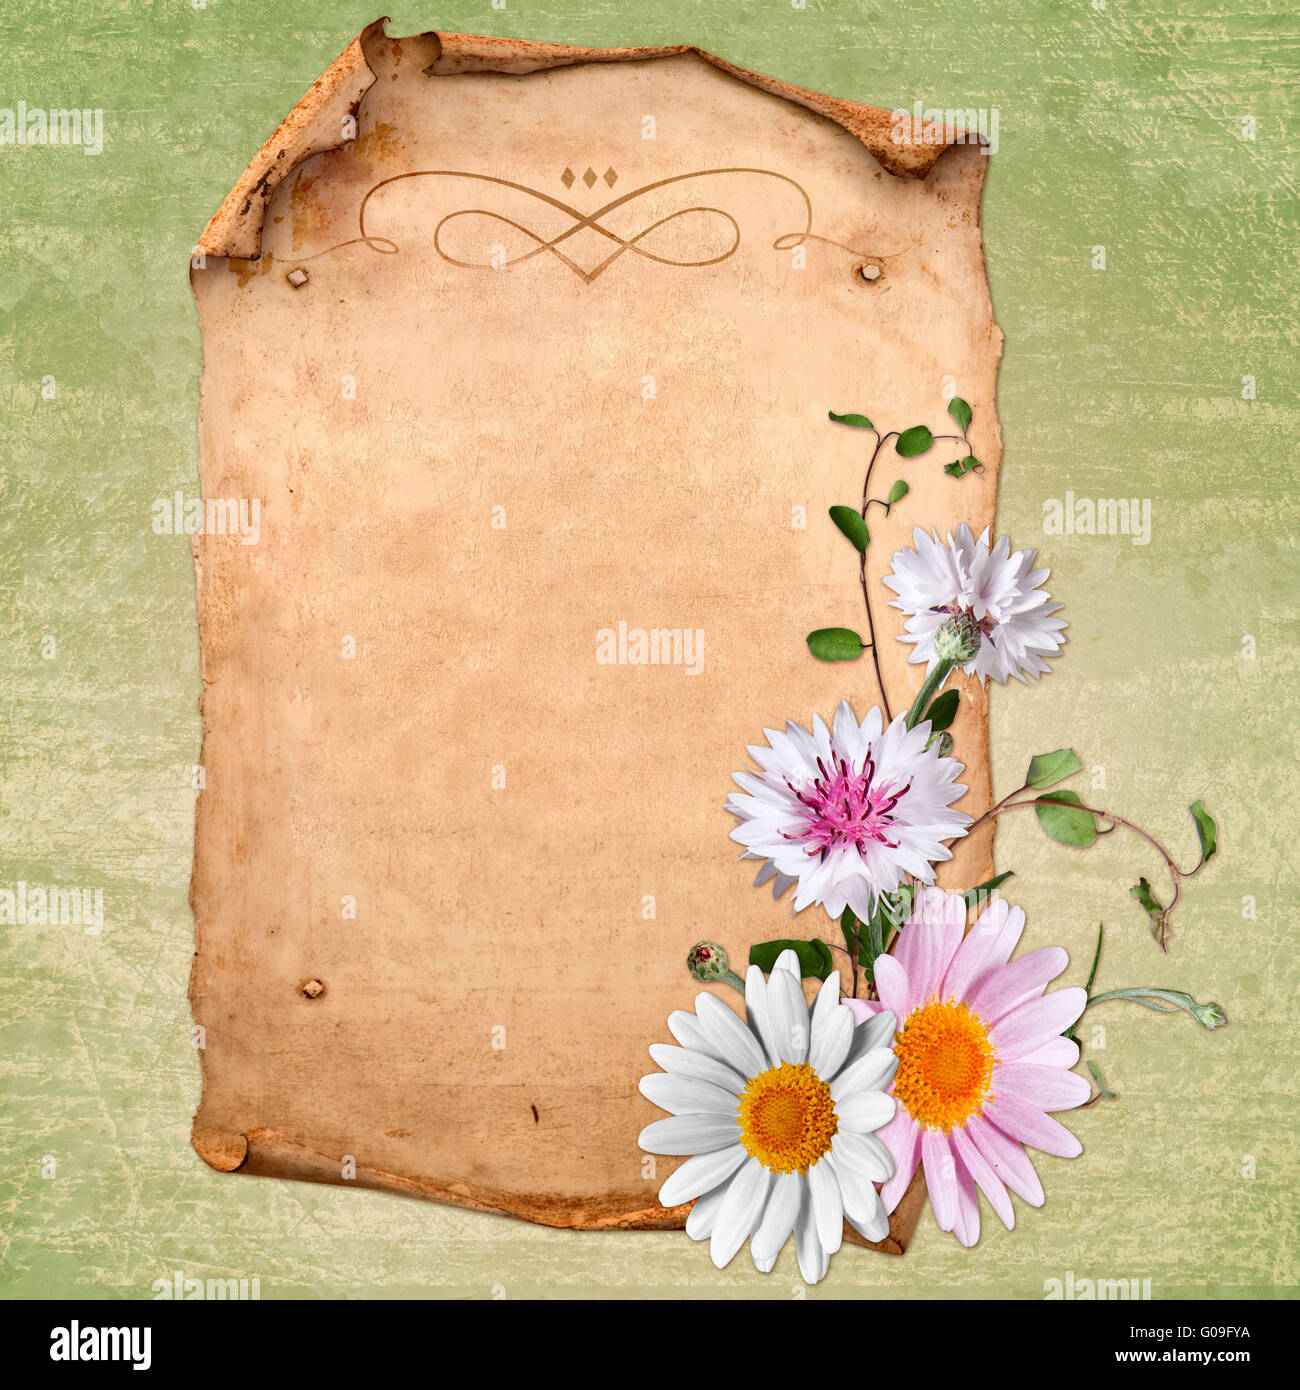 Grunge papers design in scrap-booking style - Stock Image